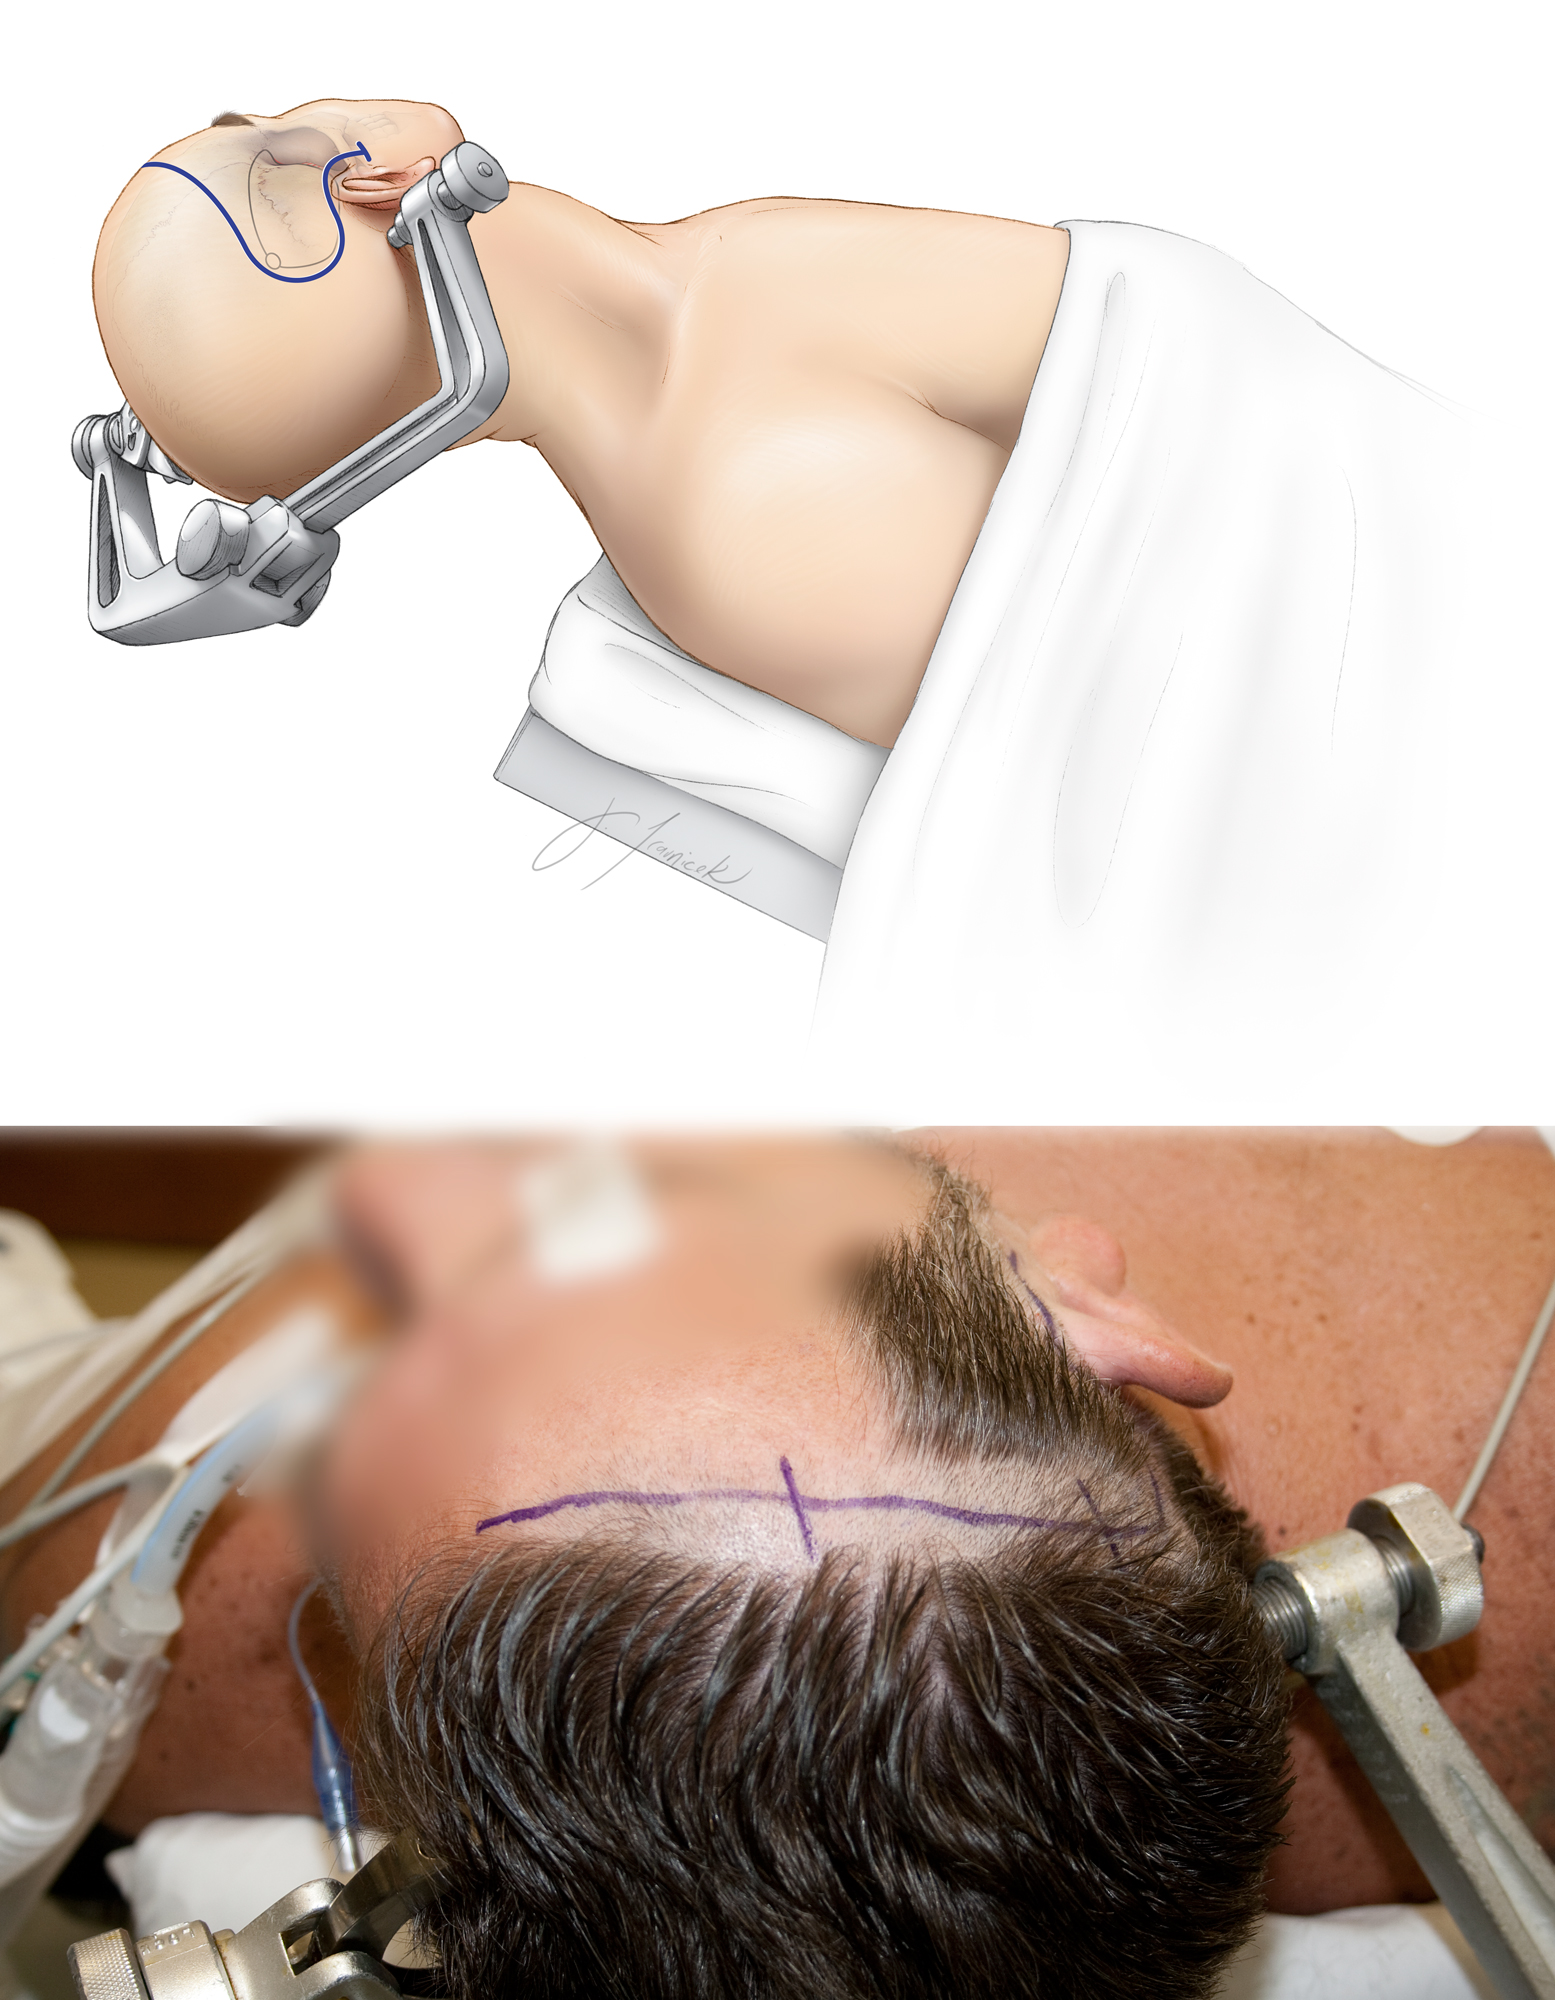 Figure 6: The patient is positioned supine with the head turned 50 degrees contralaterally and stabilized via a skull clamp. A shoulder roll may be used to assist with lateral head rotation. The single pin is placed over the mastoid area to keep the arms of the skull clamp out of the operator's working zone.